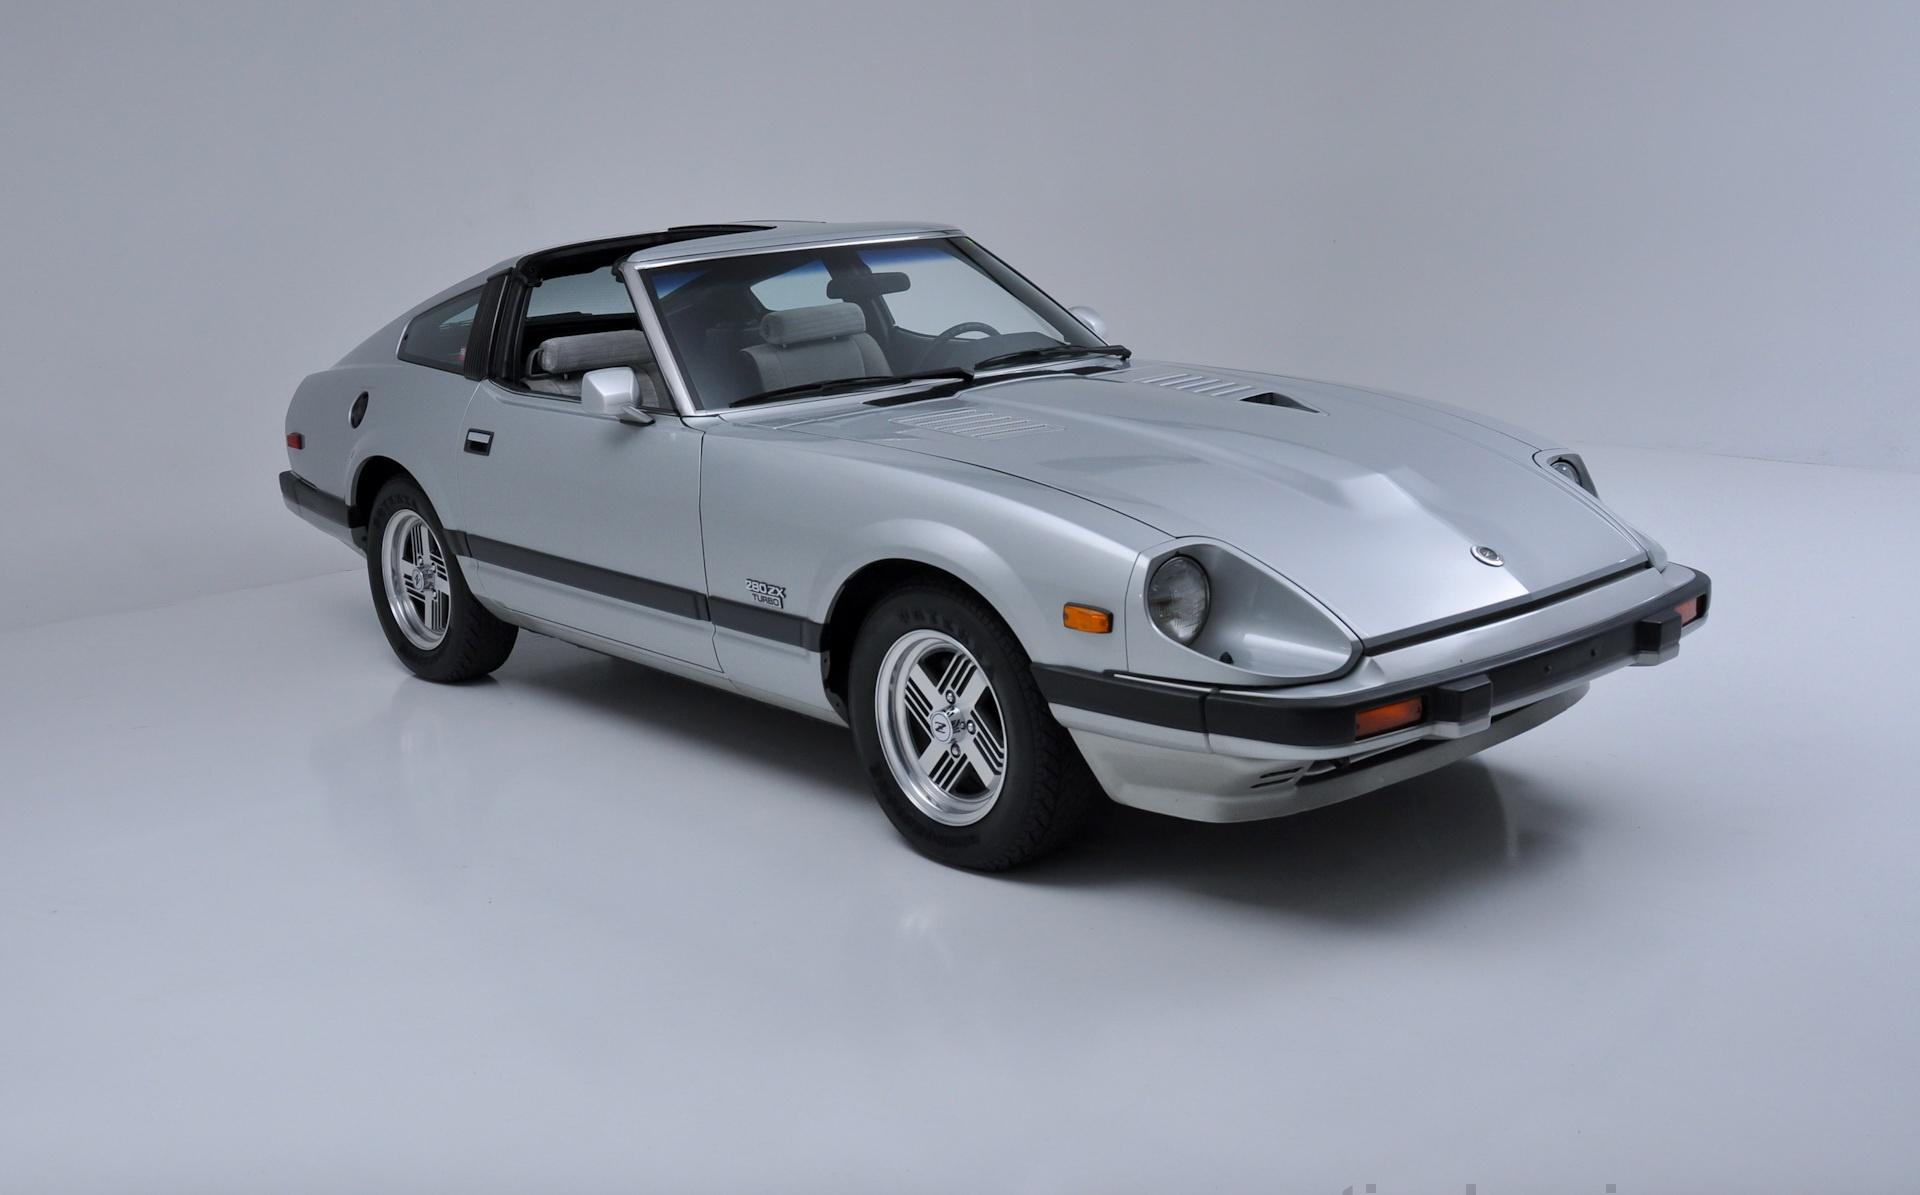 1982 datsun 280zx turbo turbo exotic and classic car dealership